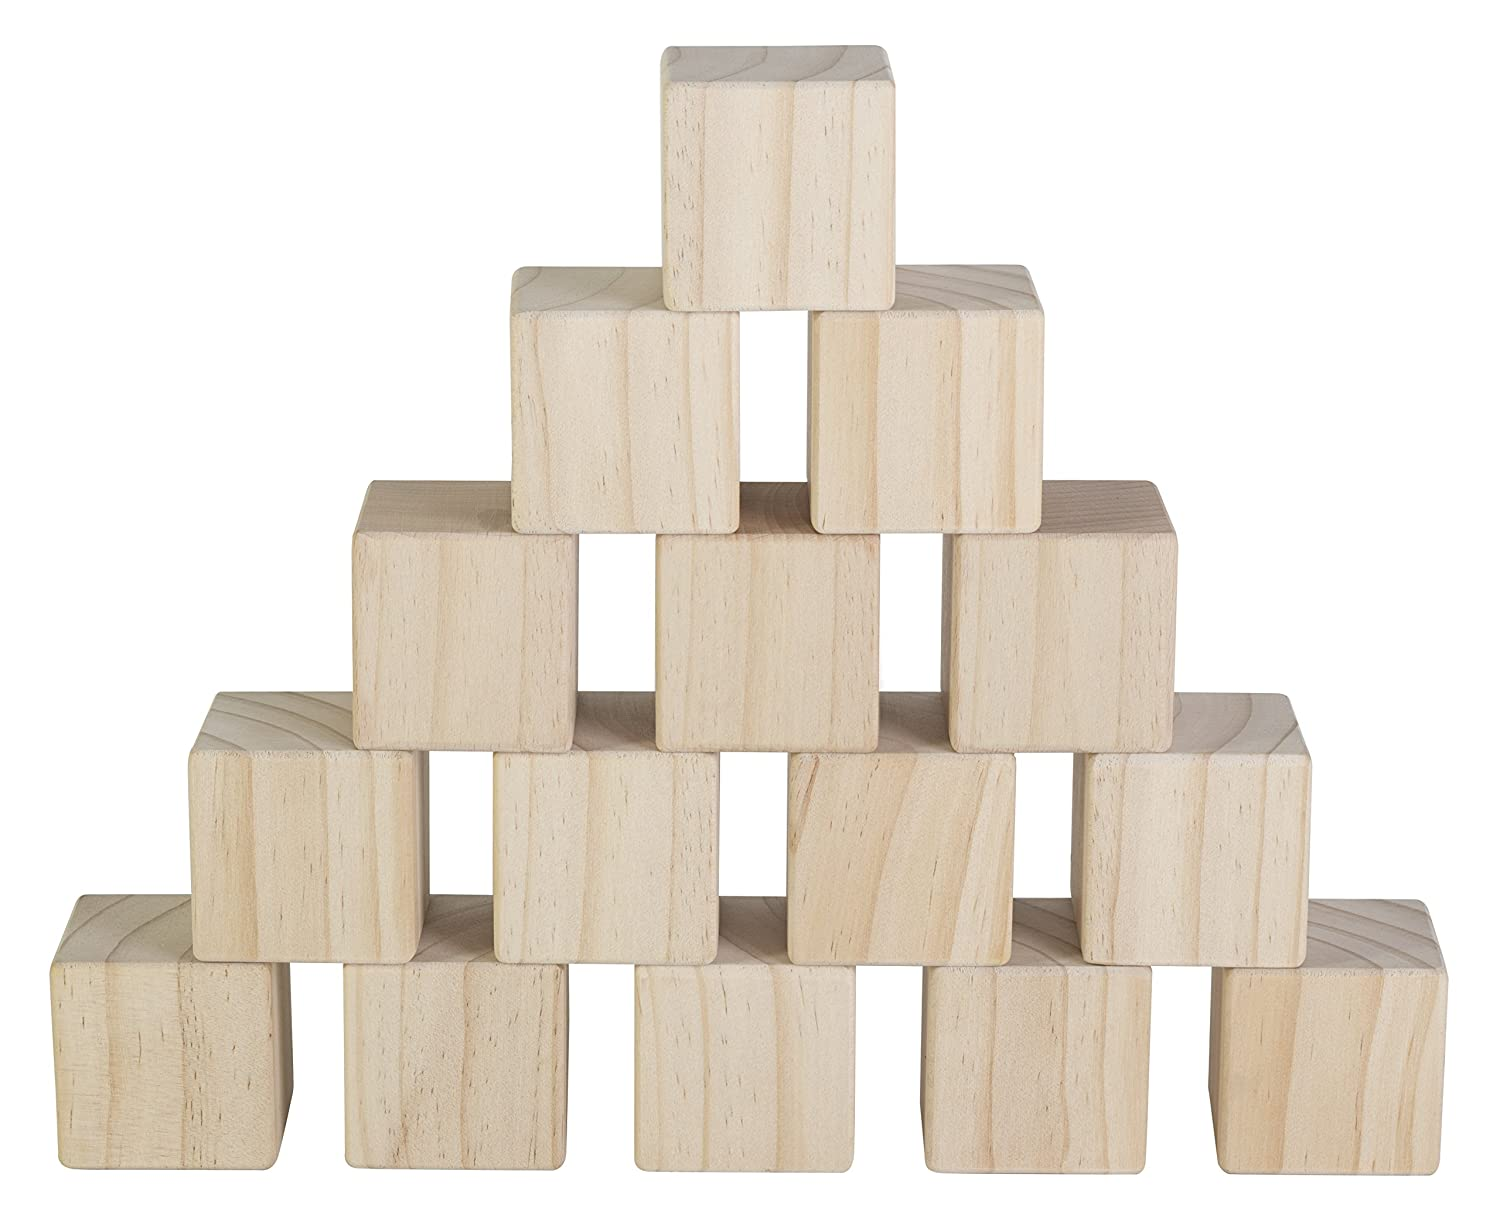 Set of 15 Large Wooden Blocks - 2 Inch Natural Wood Square Cubes - with Sanded Smooth Surface for Photo Blocks, Crafts, Art Supplies, Puzzle Projects and More - Great Toys for Kids & Child Ader Marketing